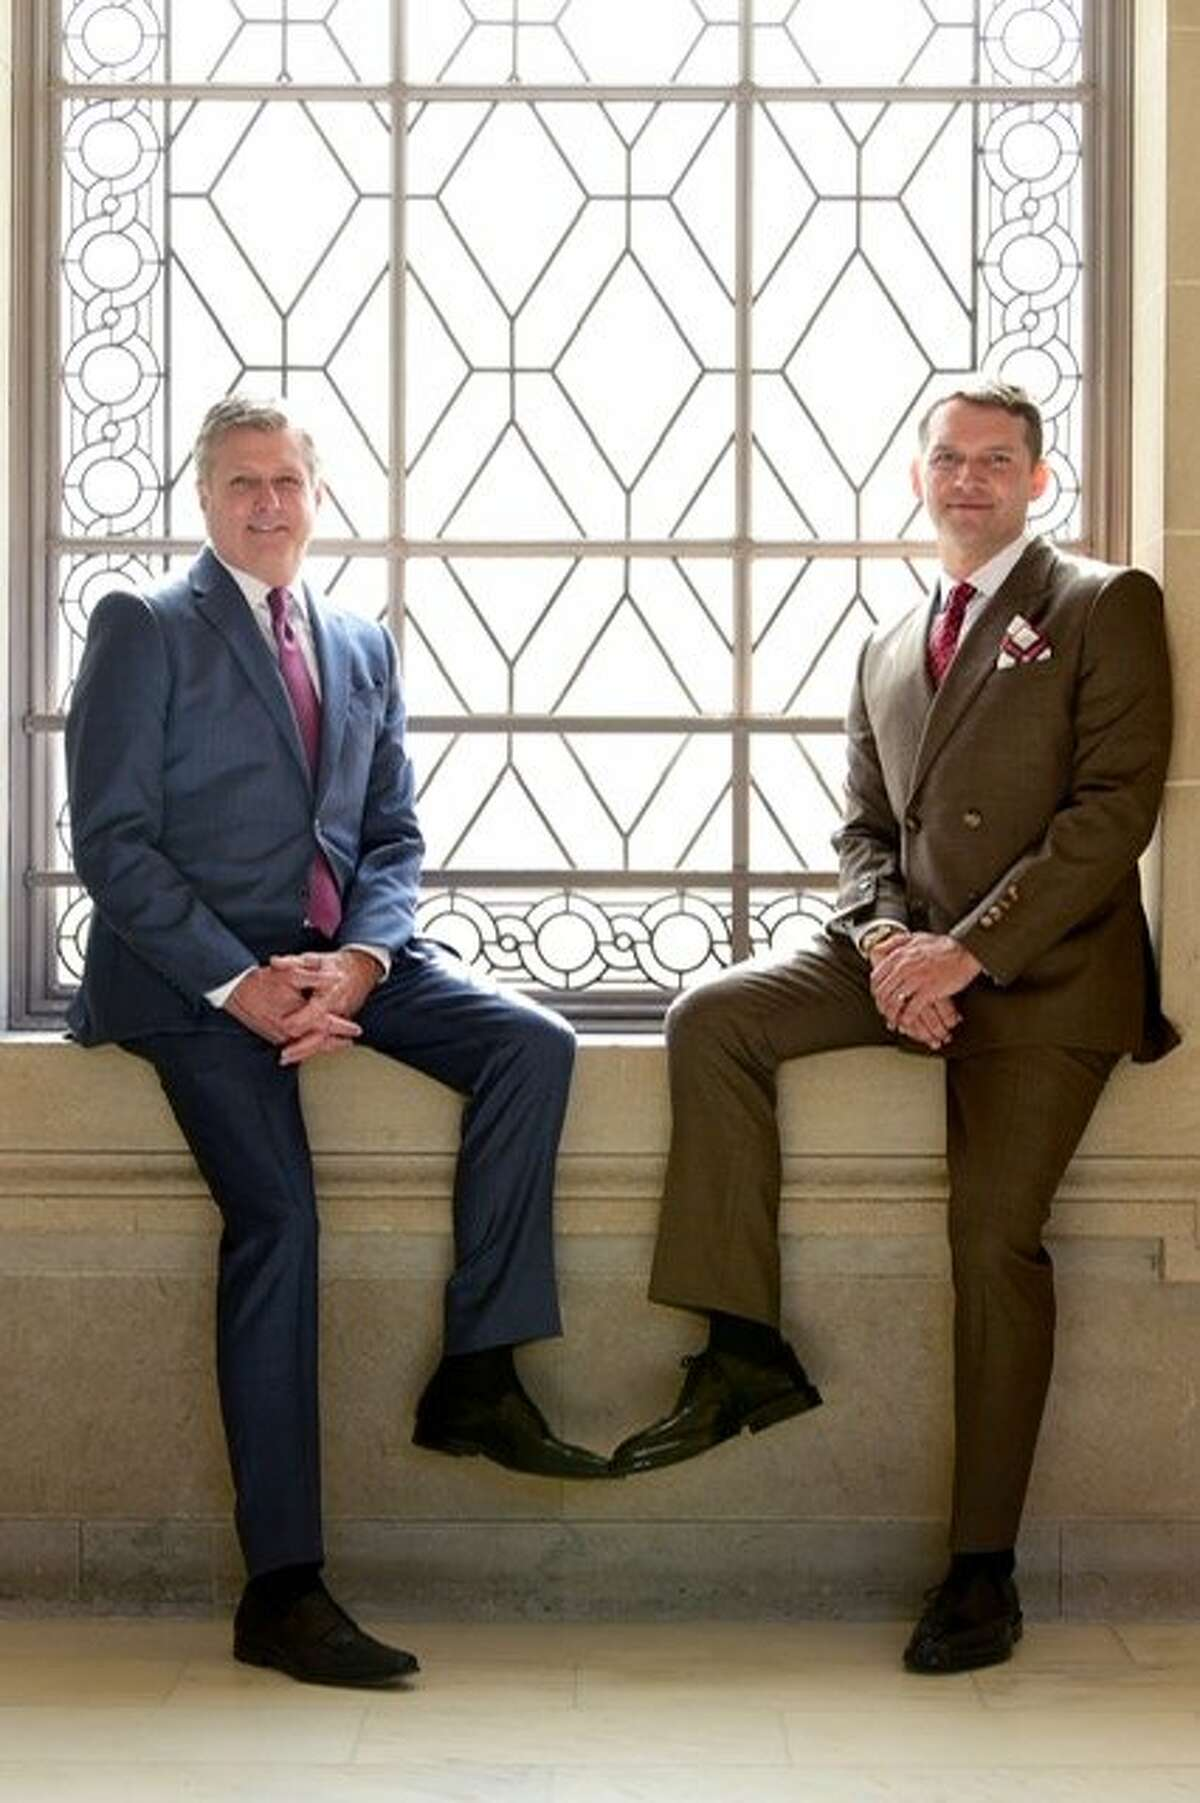 Golden State Warriors president Rick Welts, left, and his husband, Todd Gage, on their wedding day at City Hall.